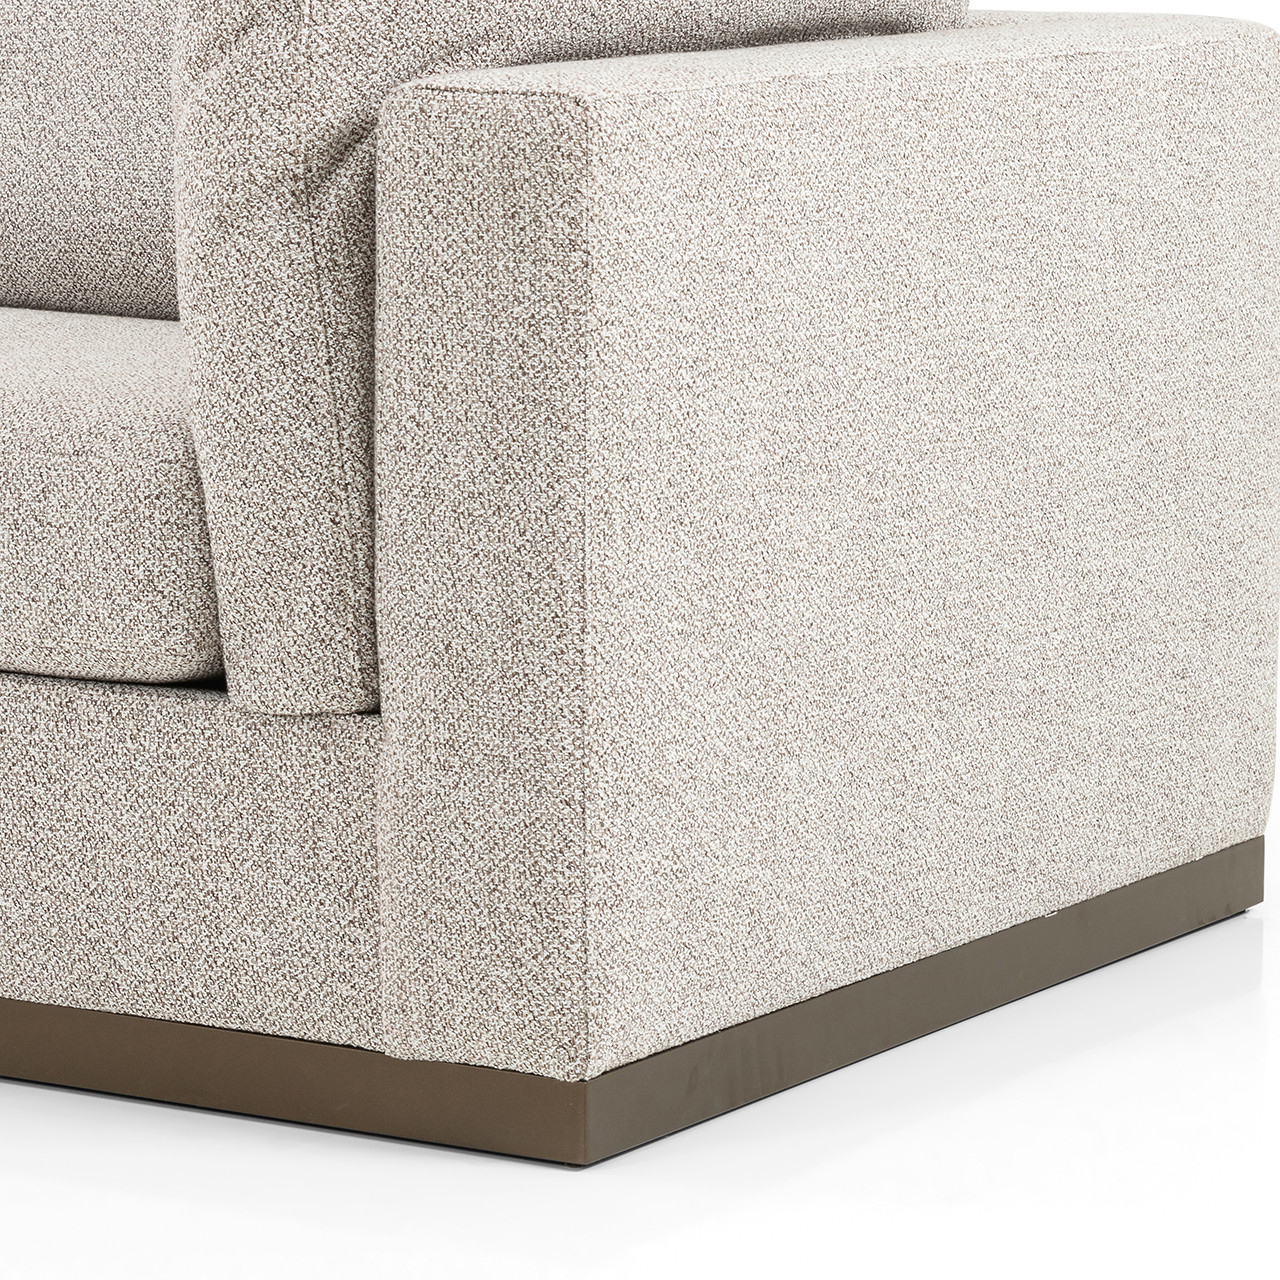 Jade 3 Pc Laf Sectional - Astor Stone